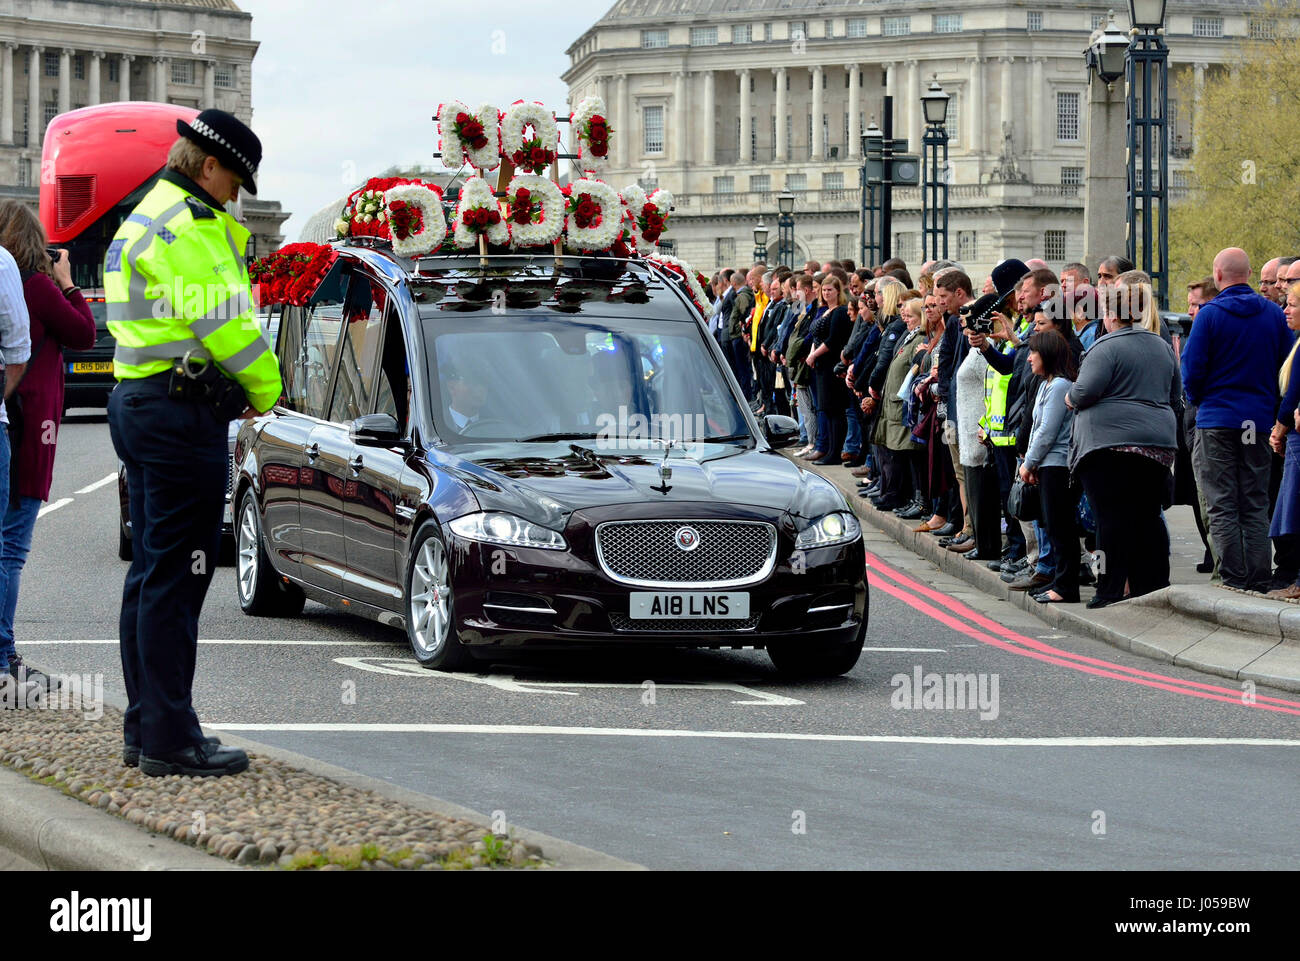 London, UK. 10th Apr, 2017. A police officer bows her head as the funeral cortege of PC Keith Palmer passes over Stock Photo